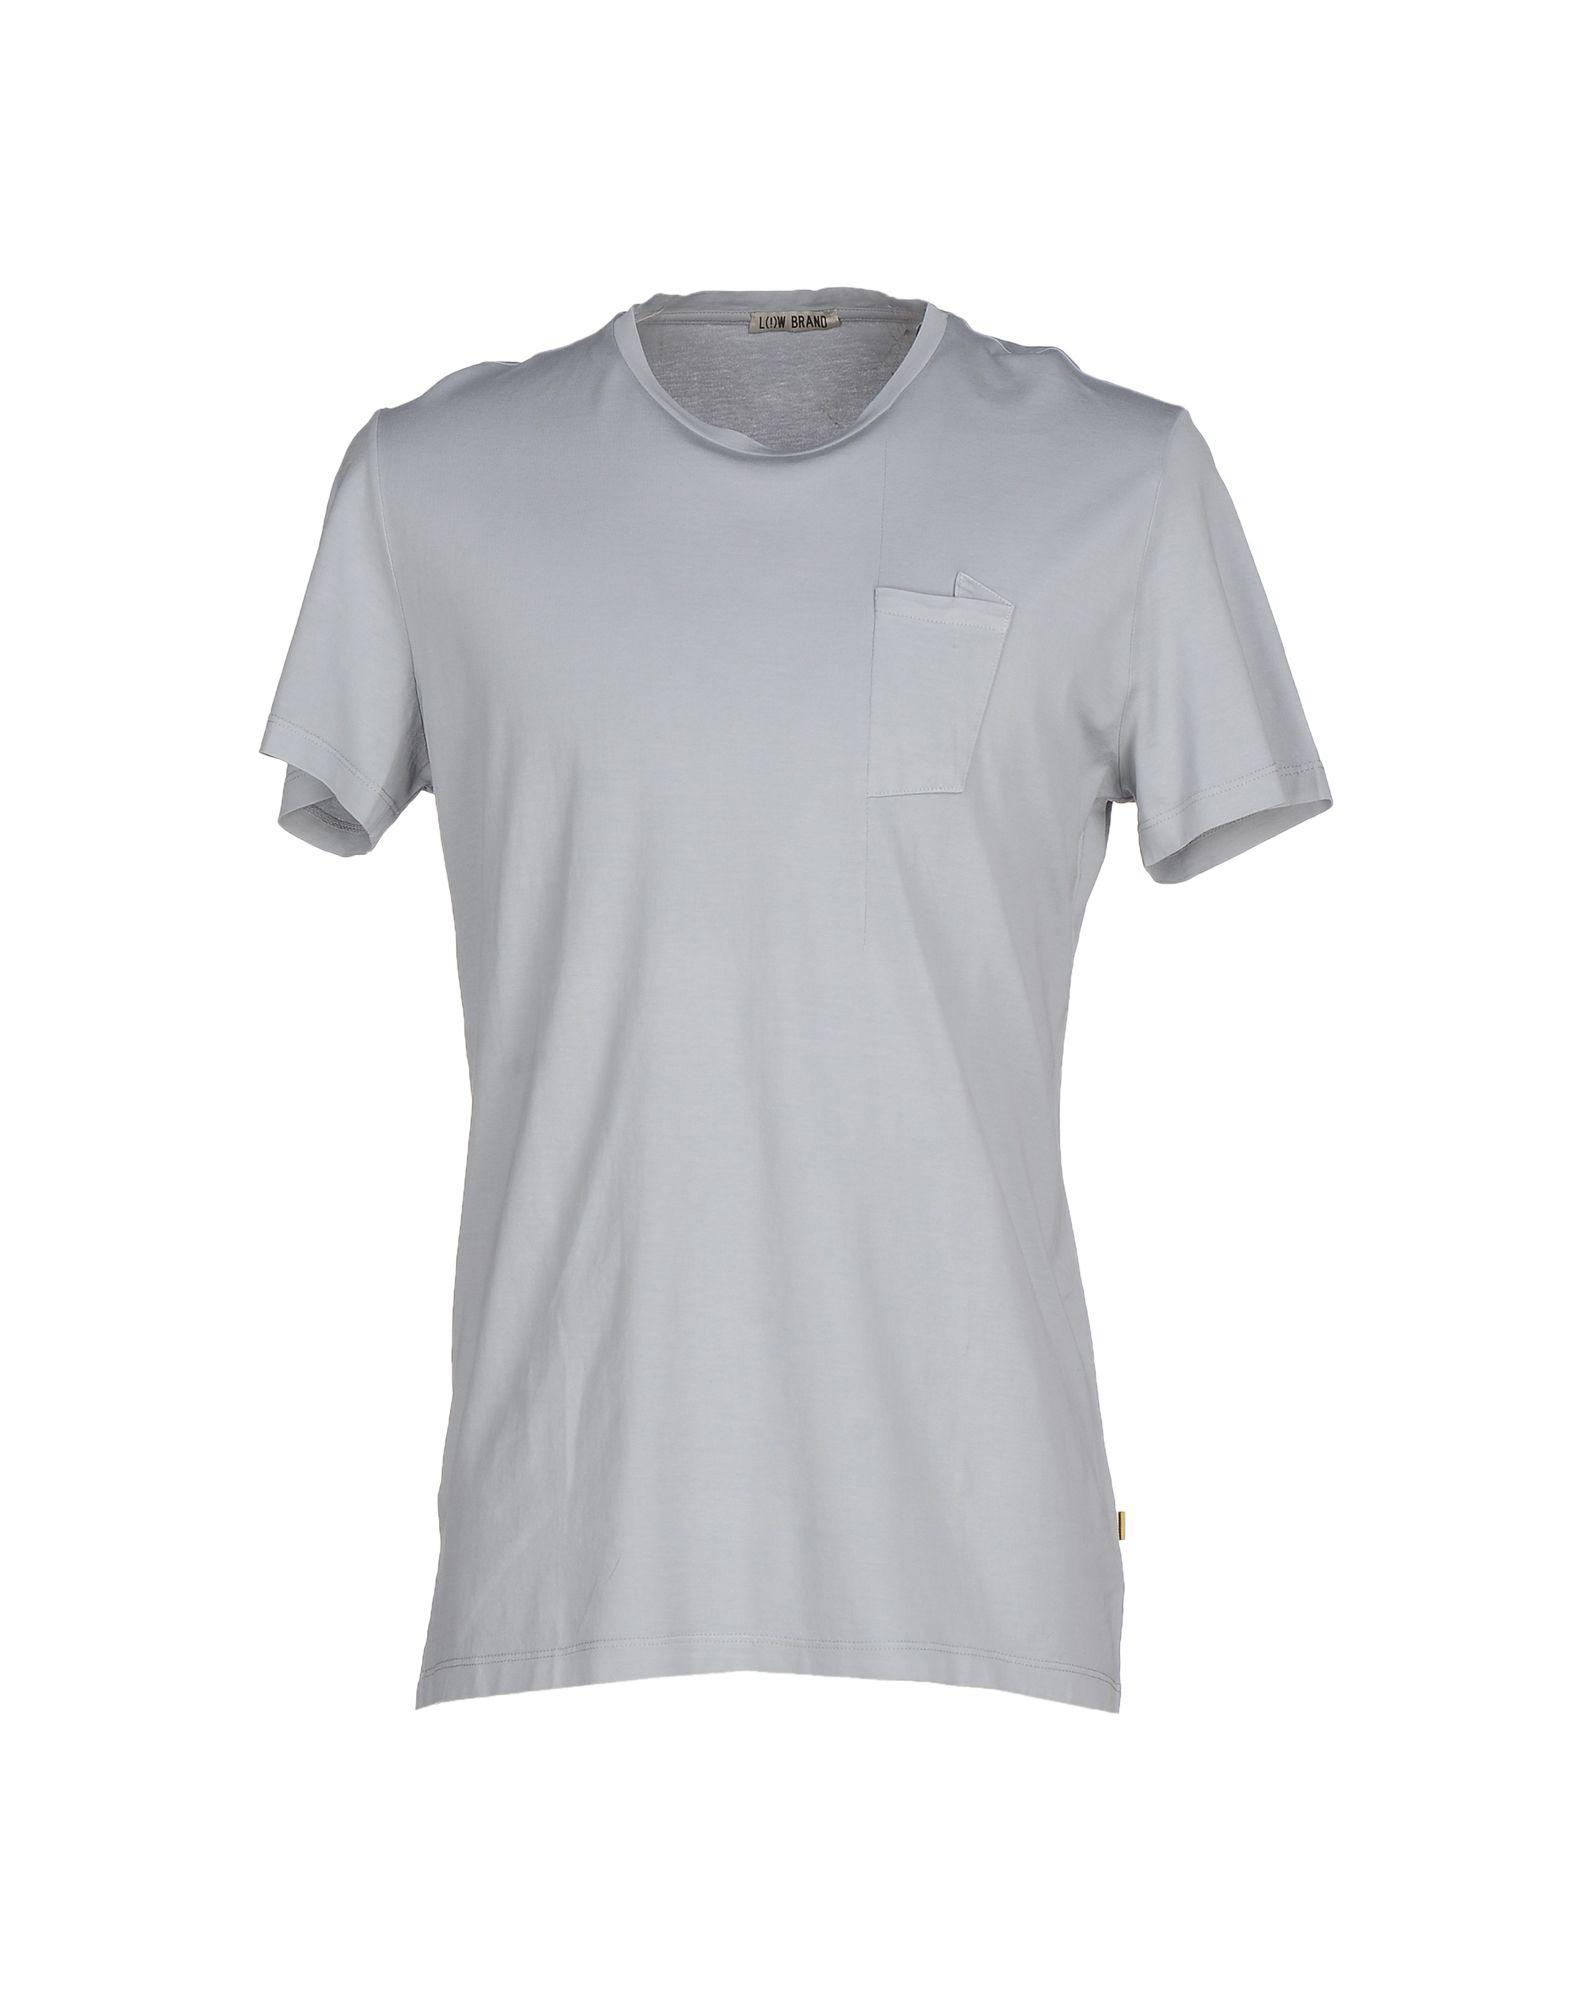 Low Brand T-shirt In Light Grey